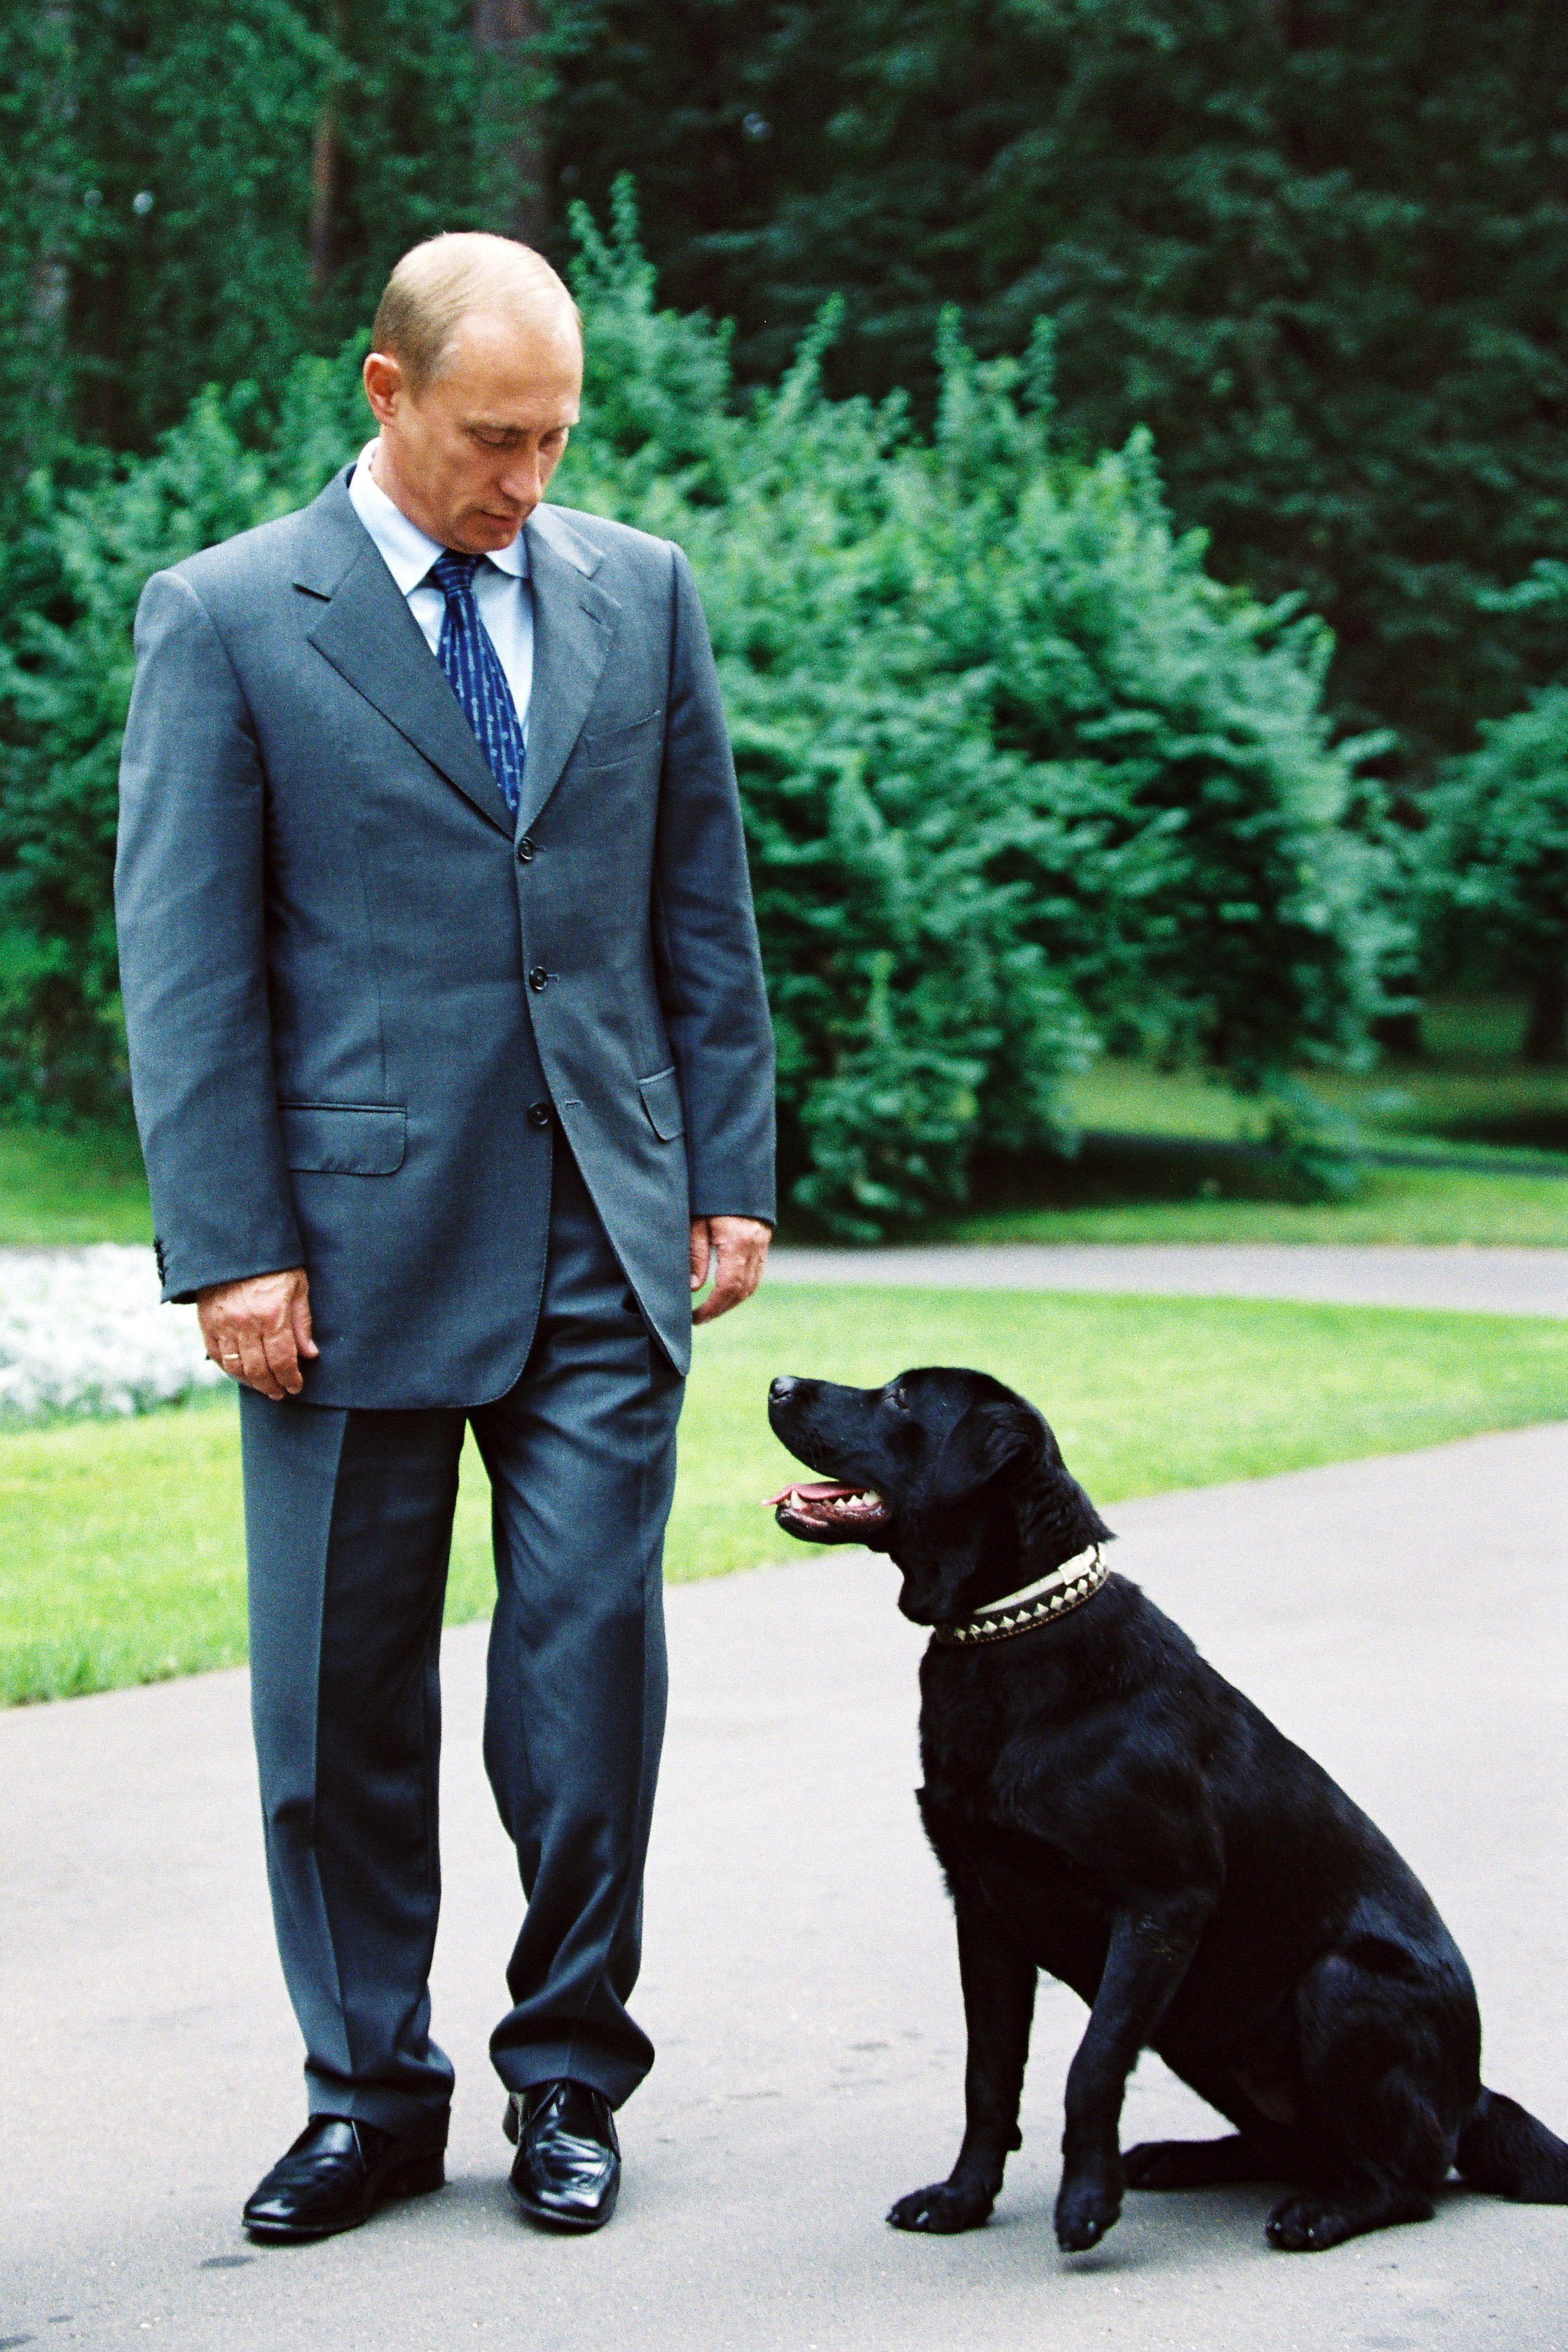 Known Knowns and unKnowns: Vladimir Putin ♥ dogs, so do I.